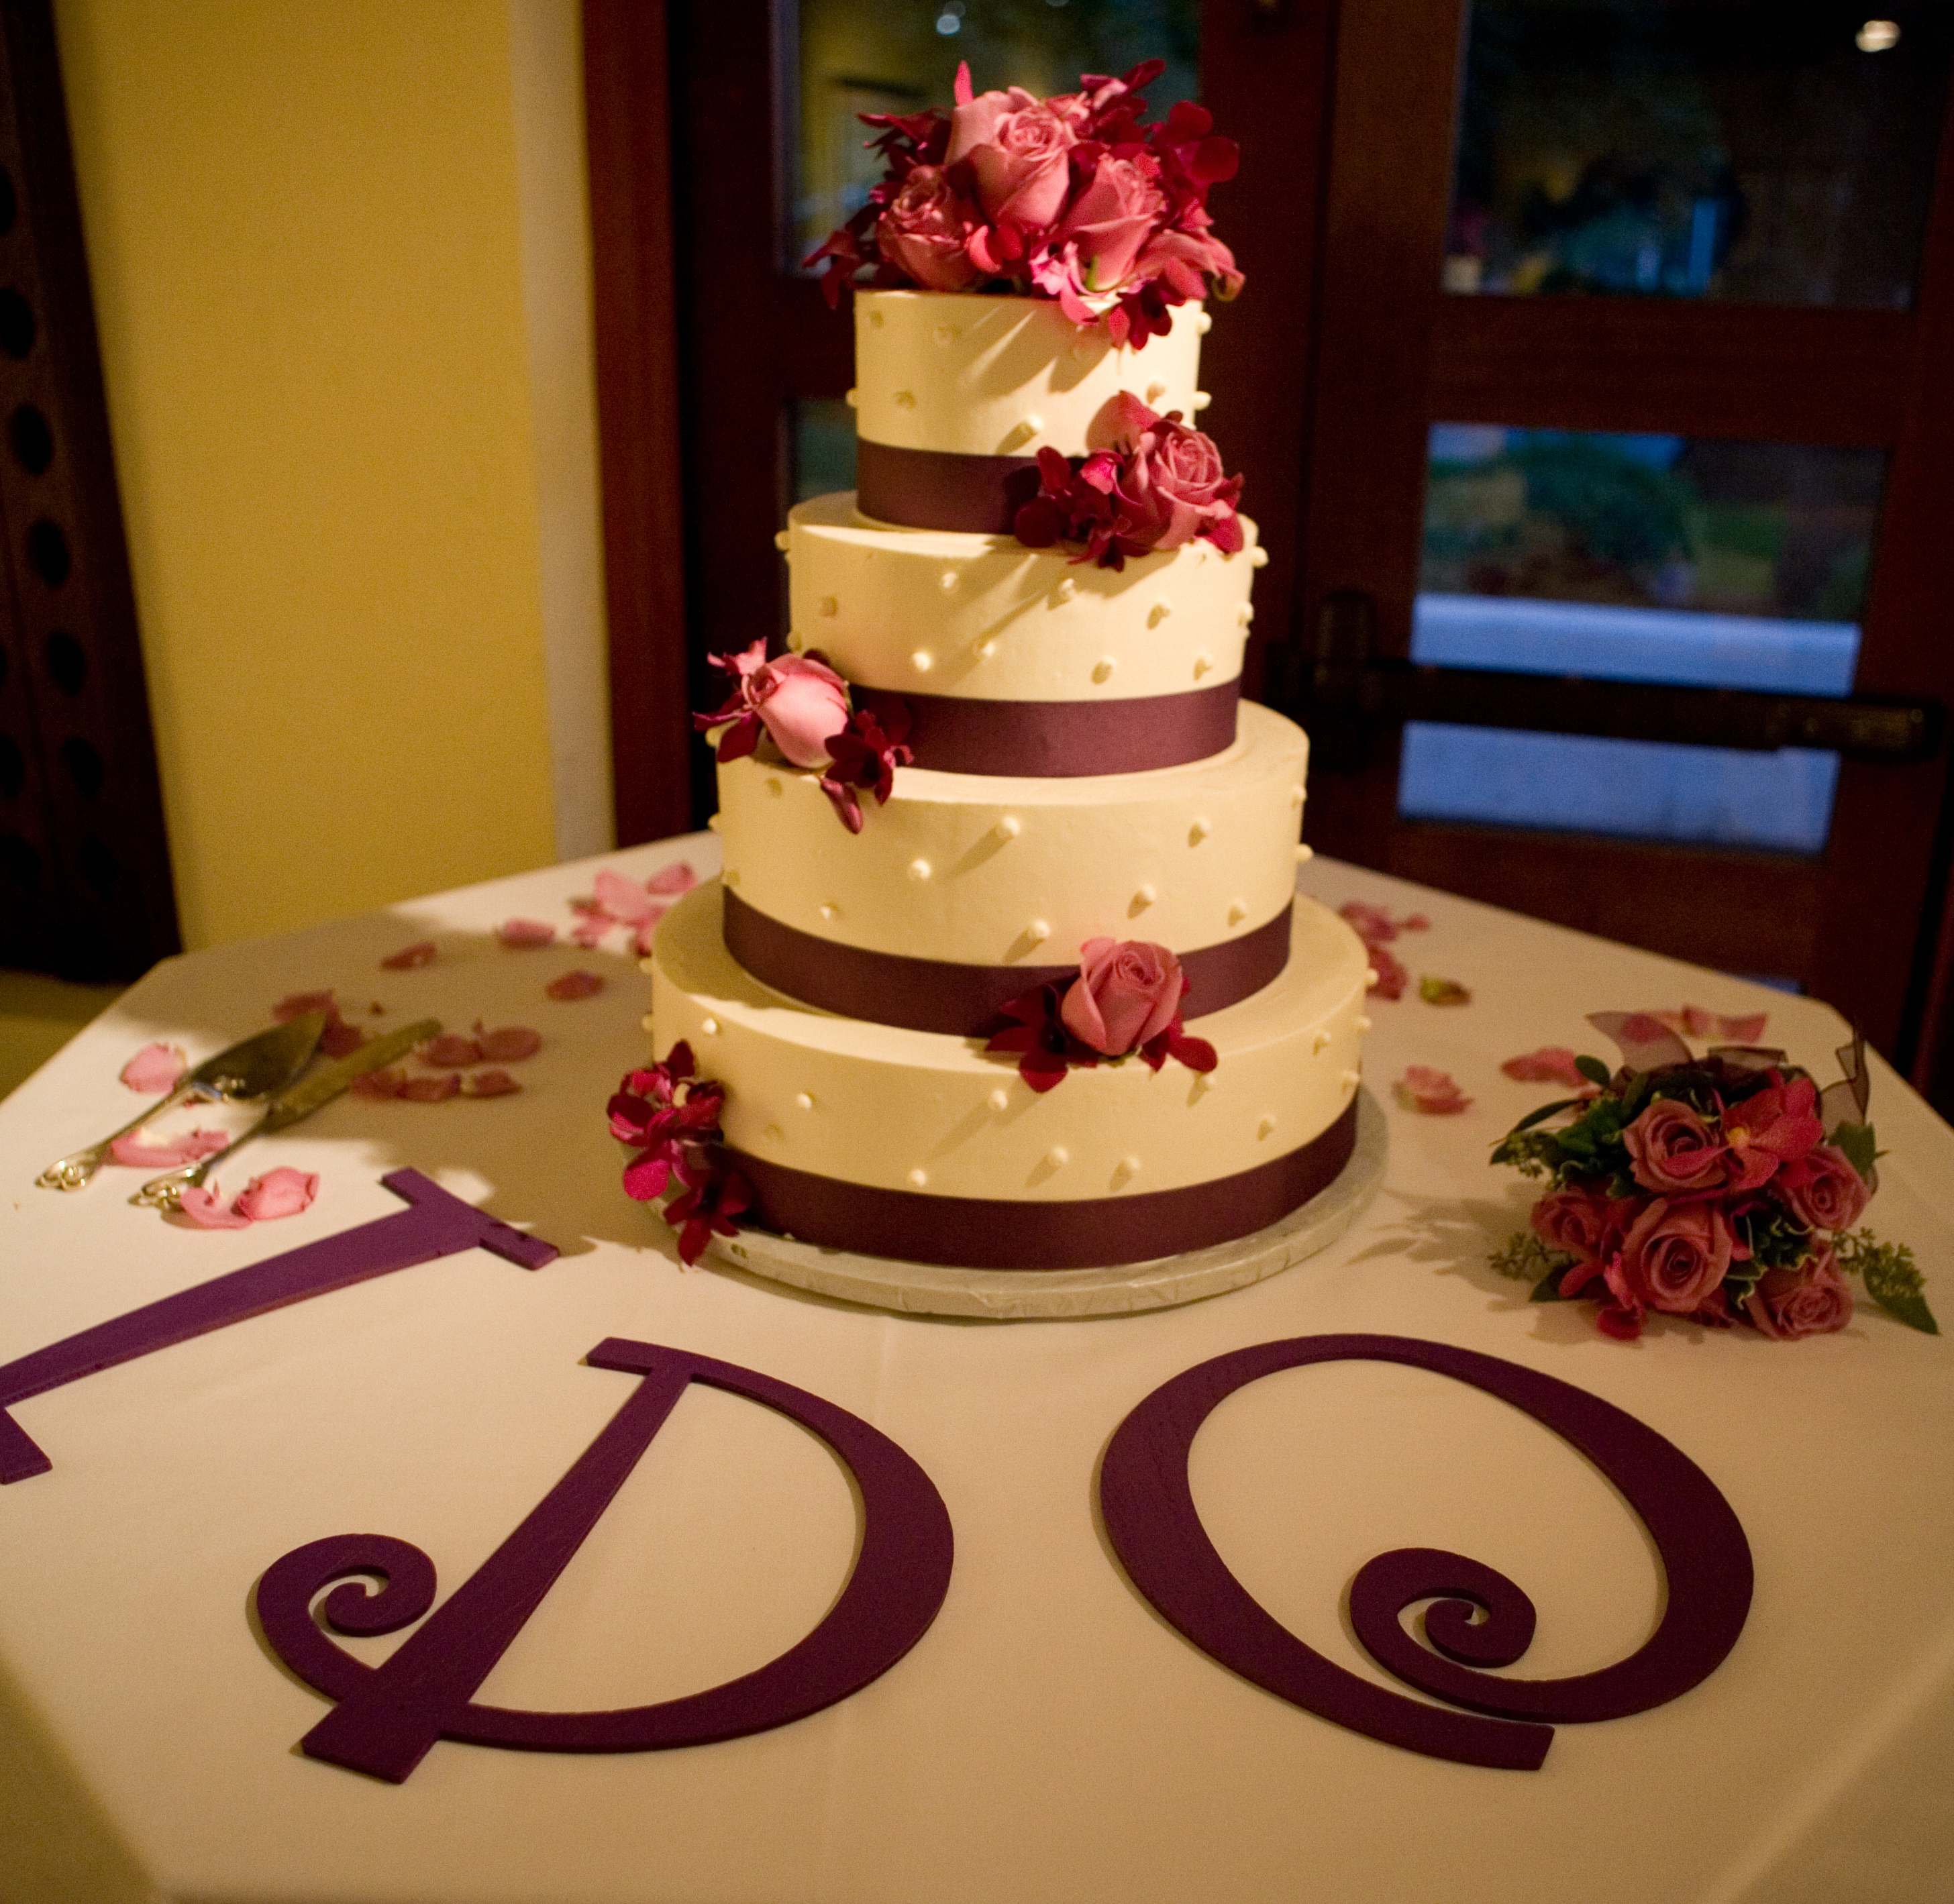 Cakes, cake, Floral Wedding Cakes, Ribbon Wedding Cakes, Rebecca wilkowski photography